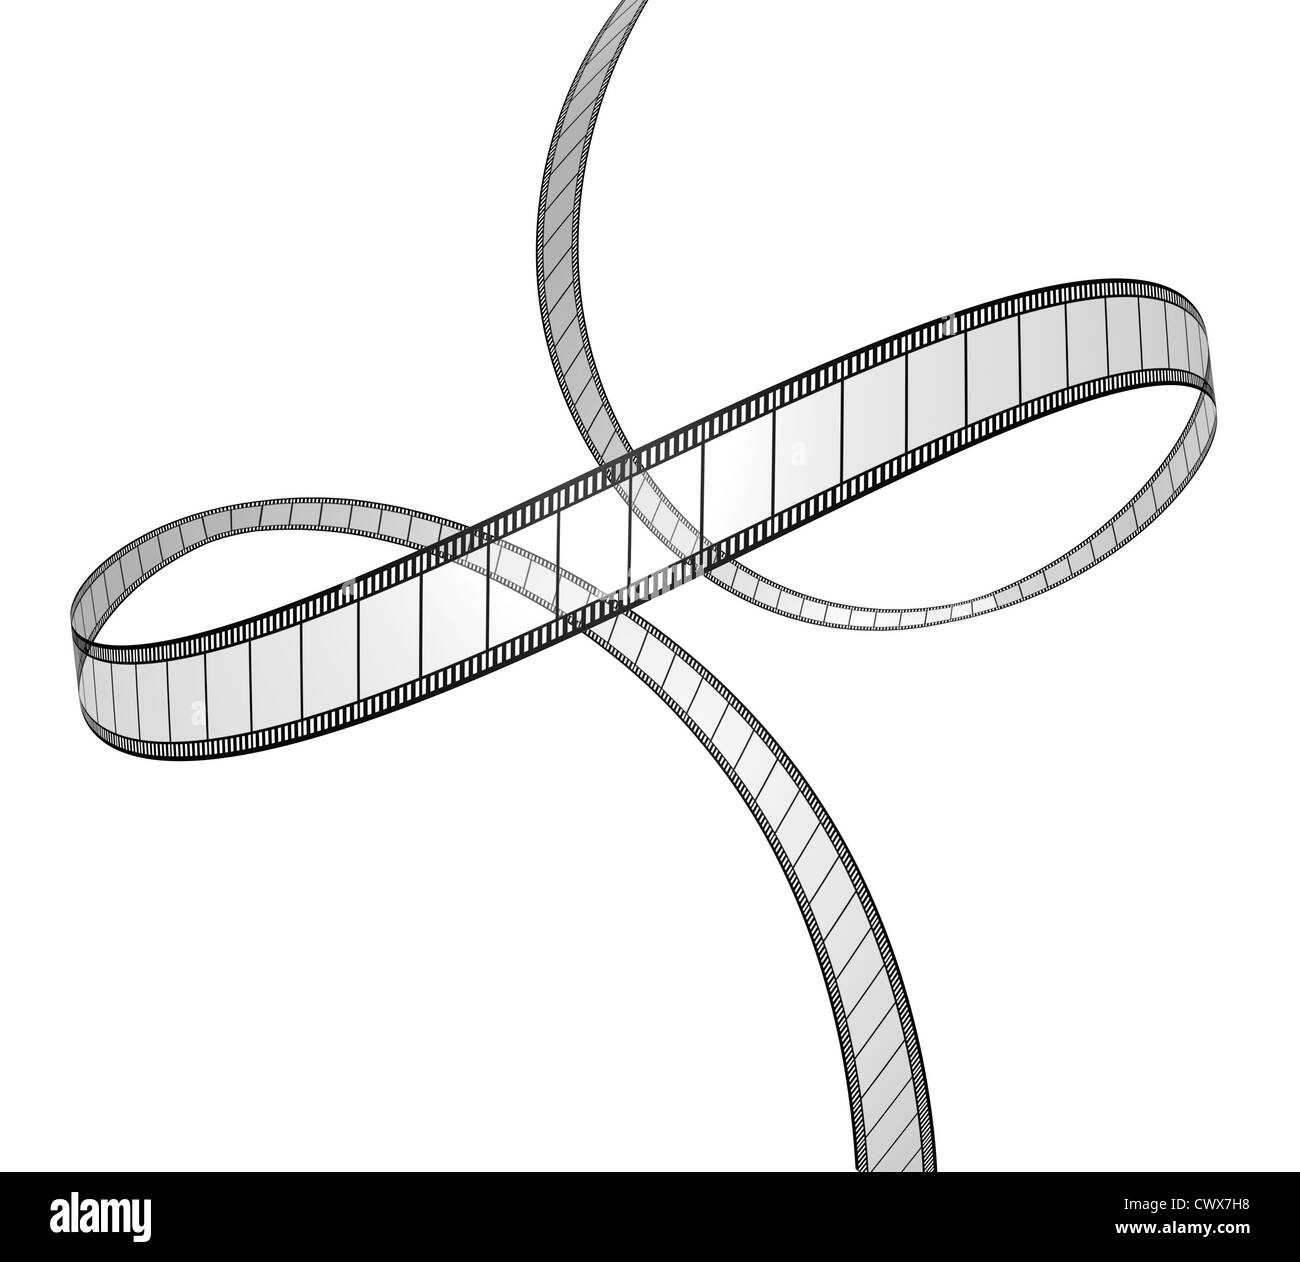 Film in dynamic perspective movie frames in a 3d twisted shape on ...